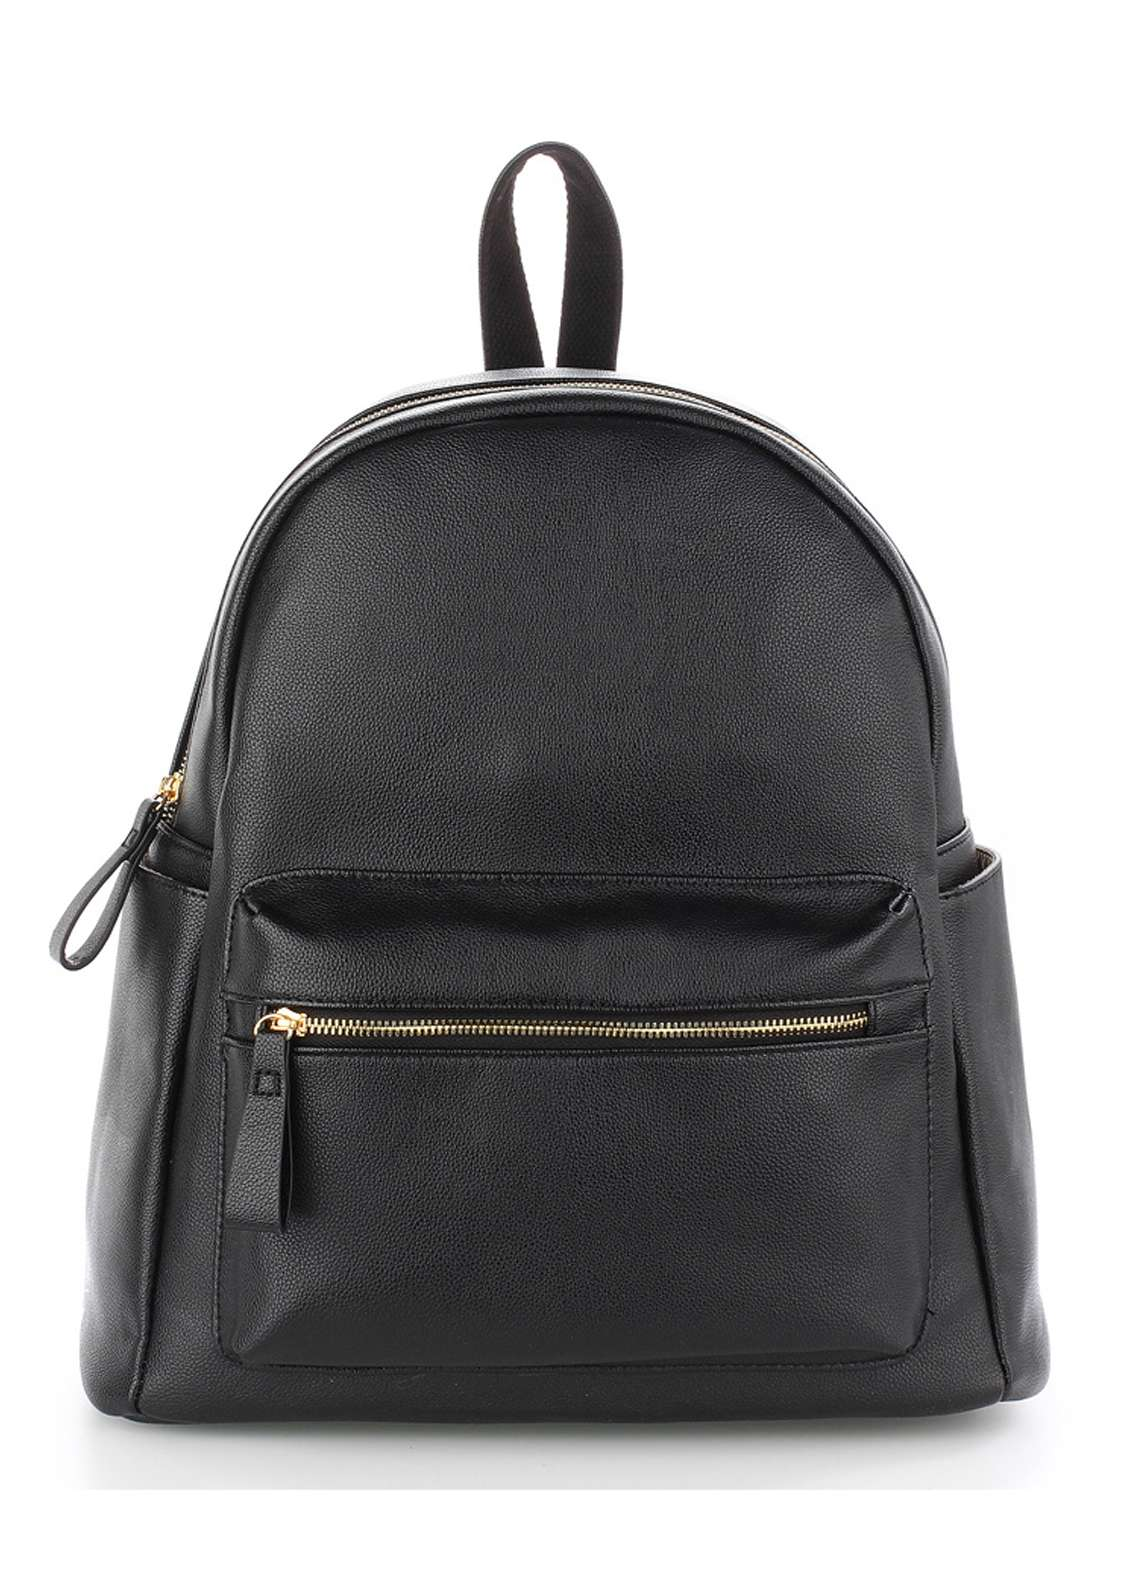 Leesun London Soft Faux Leather Backpack Bags  for Unisex  Black with Plain Texture